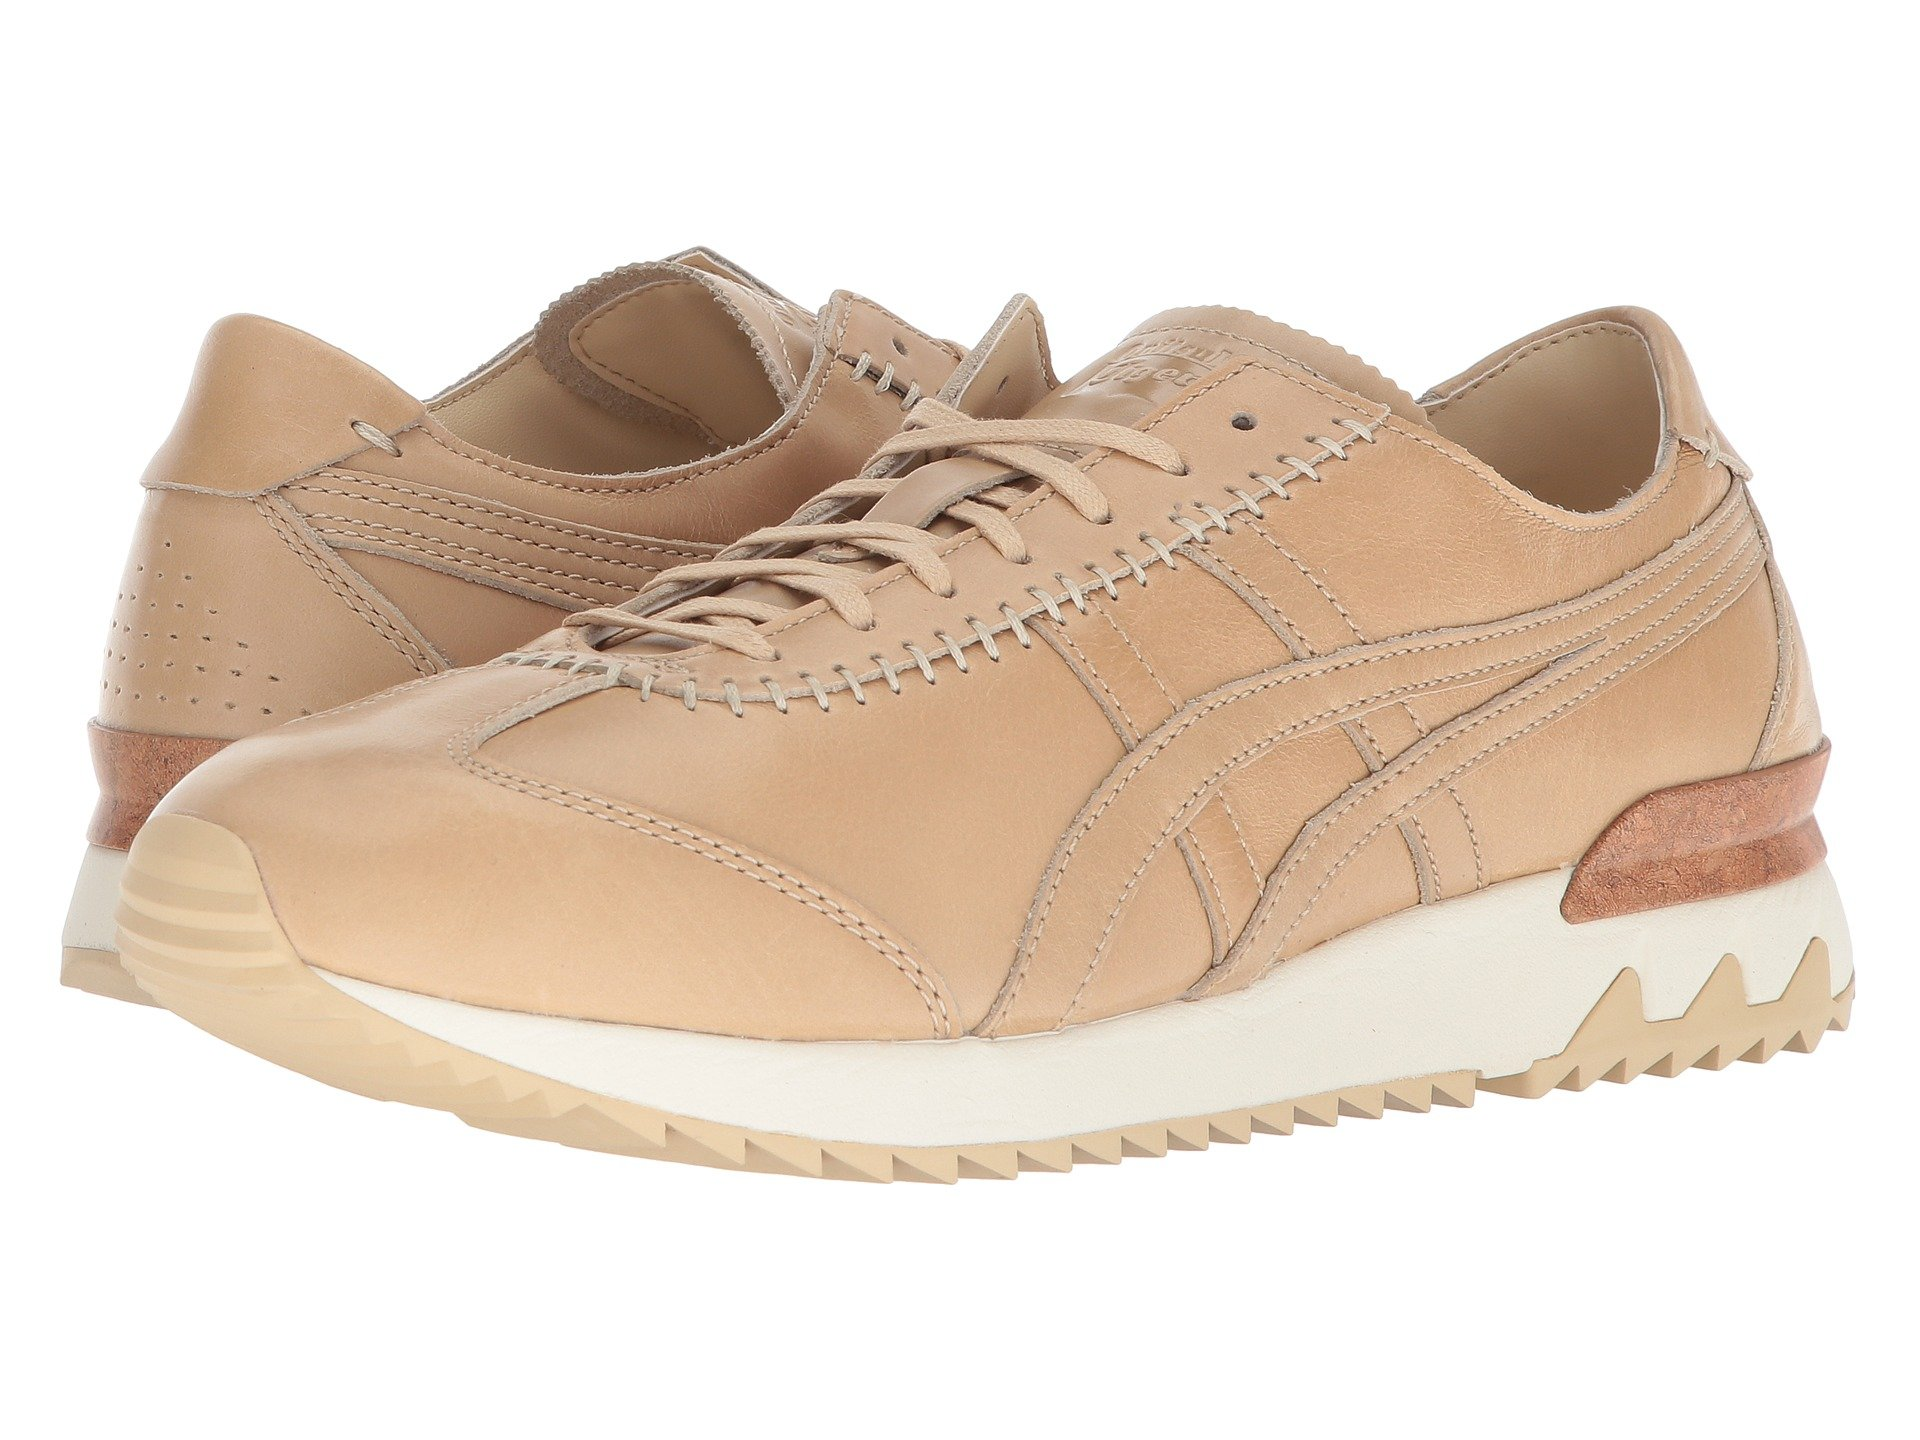 100% authentic 09381 886db Кроссовки Onitsuka Tiger by Asics Tiger MHS Beige, 45 (285 мм) (10103393)